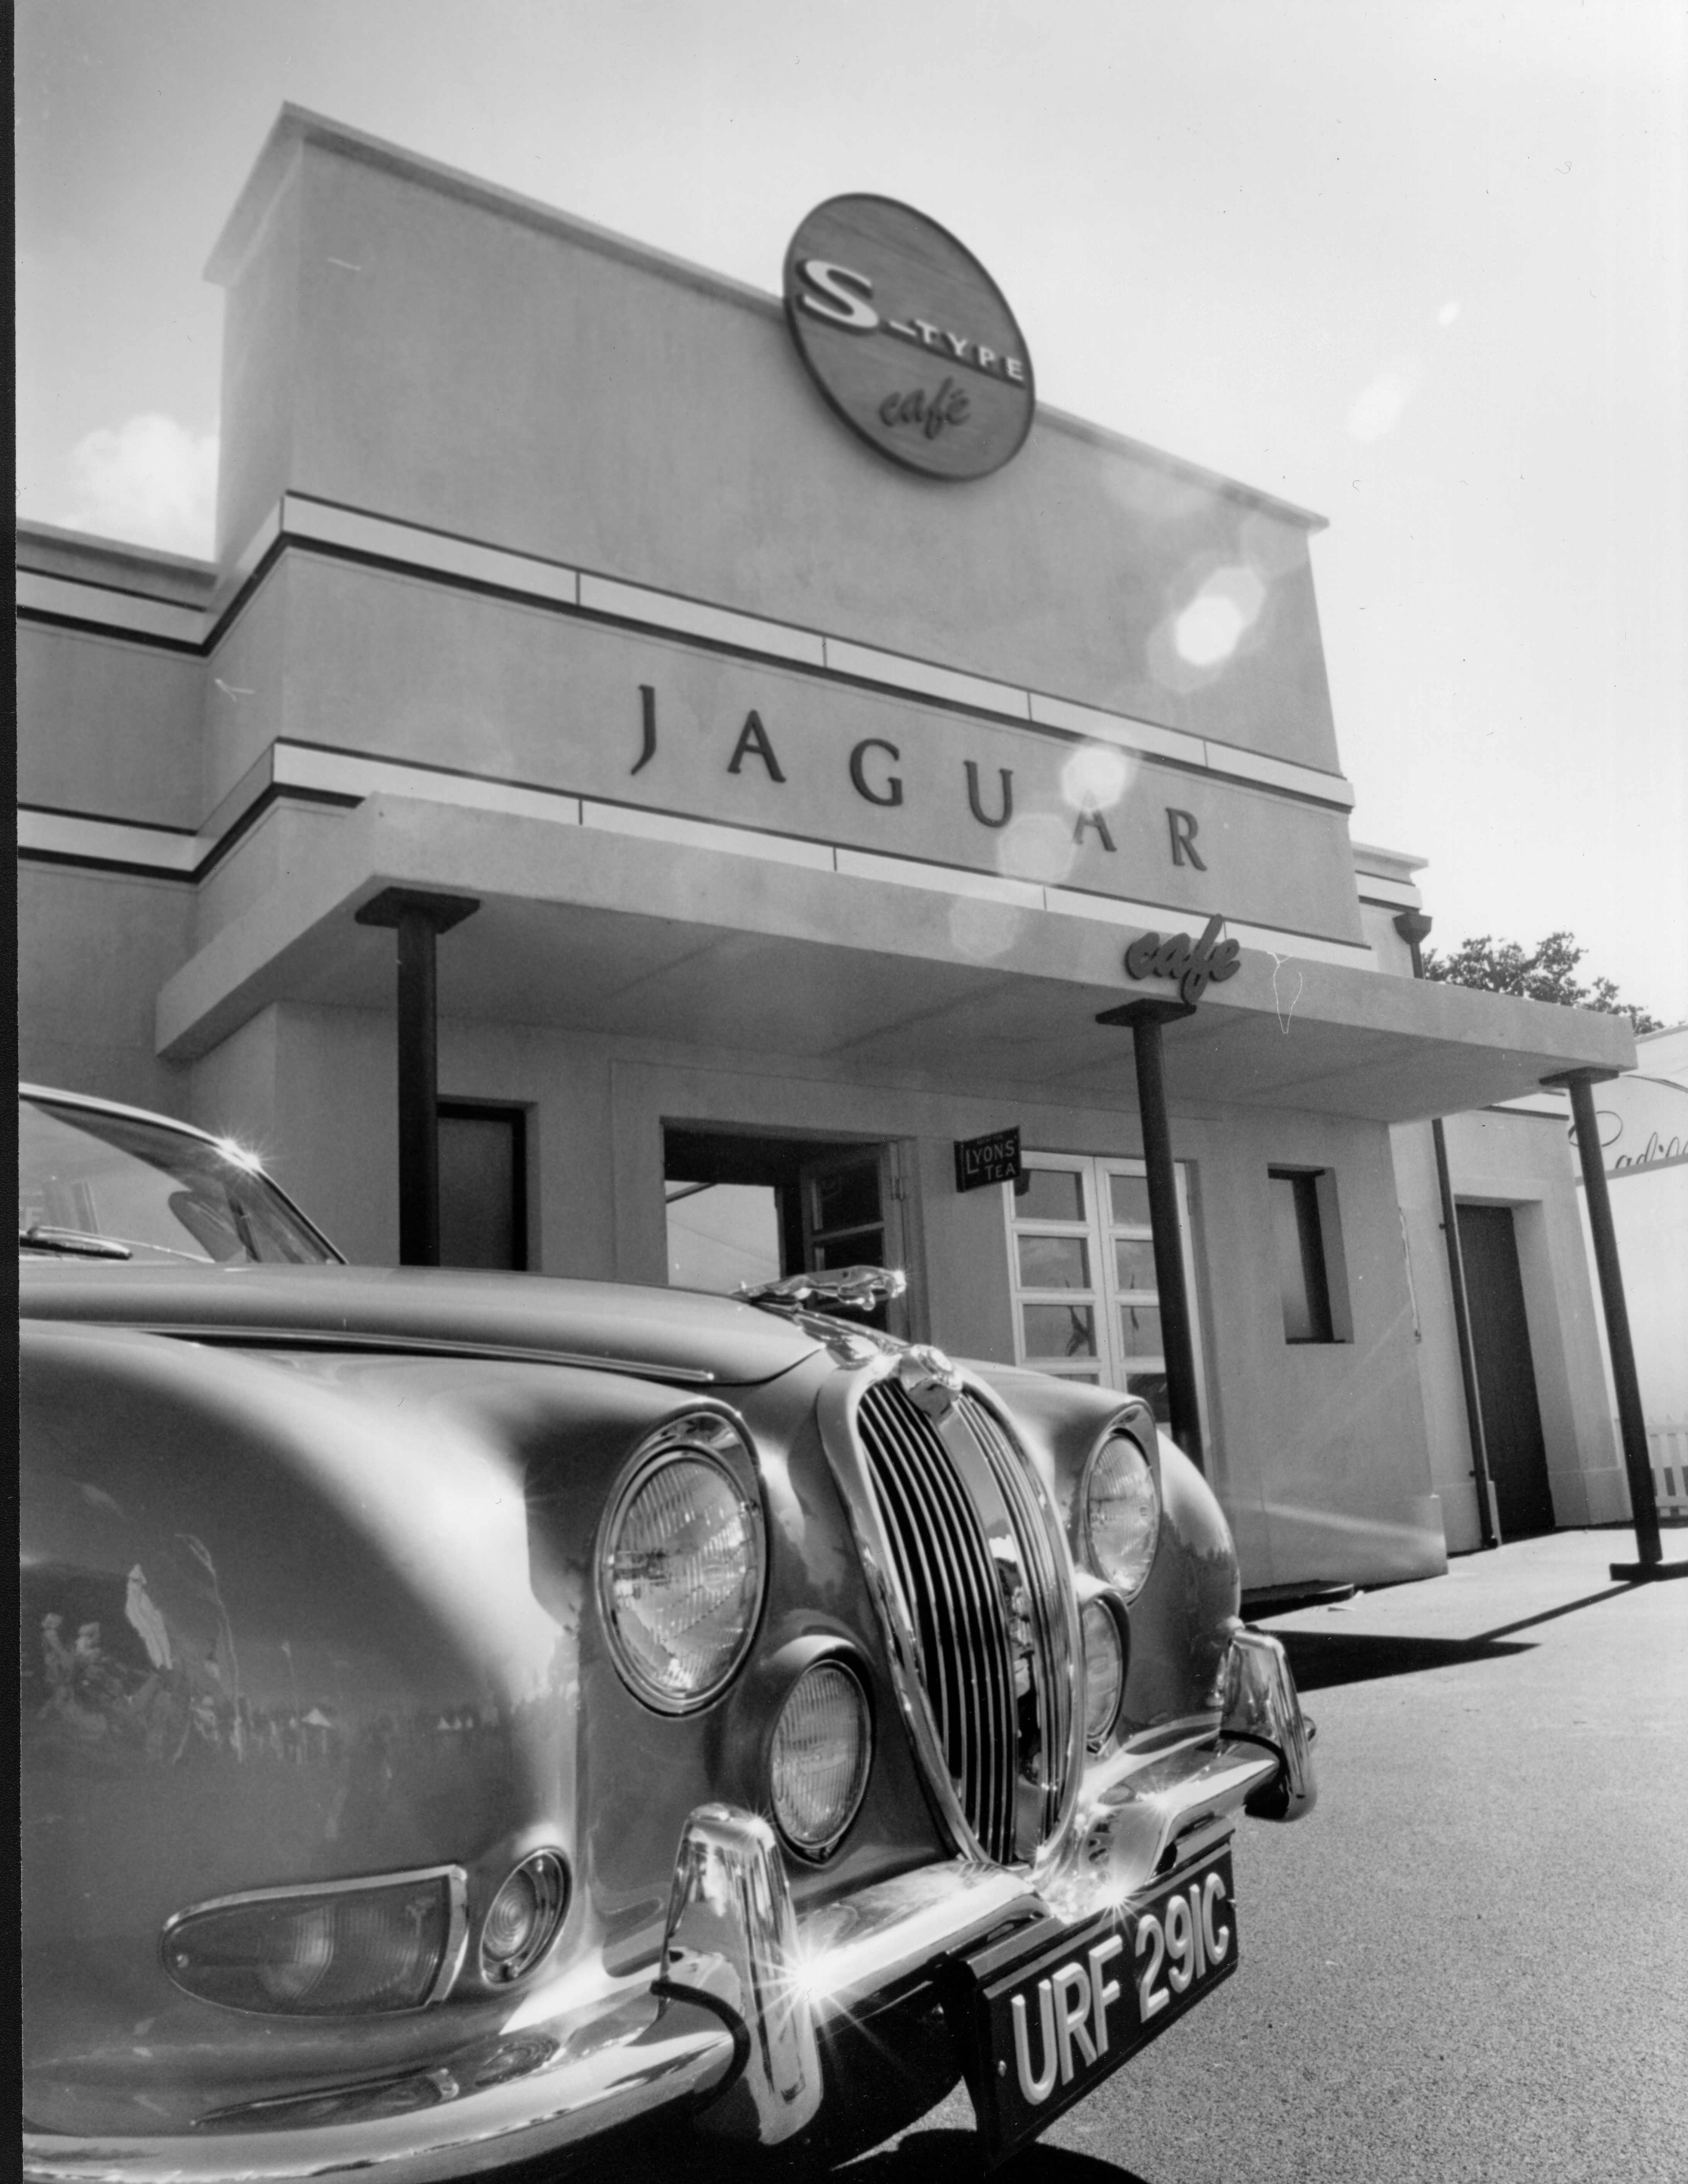 Jaguar Cafe-Black & White 2 copy